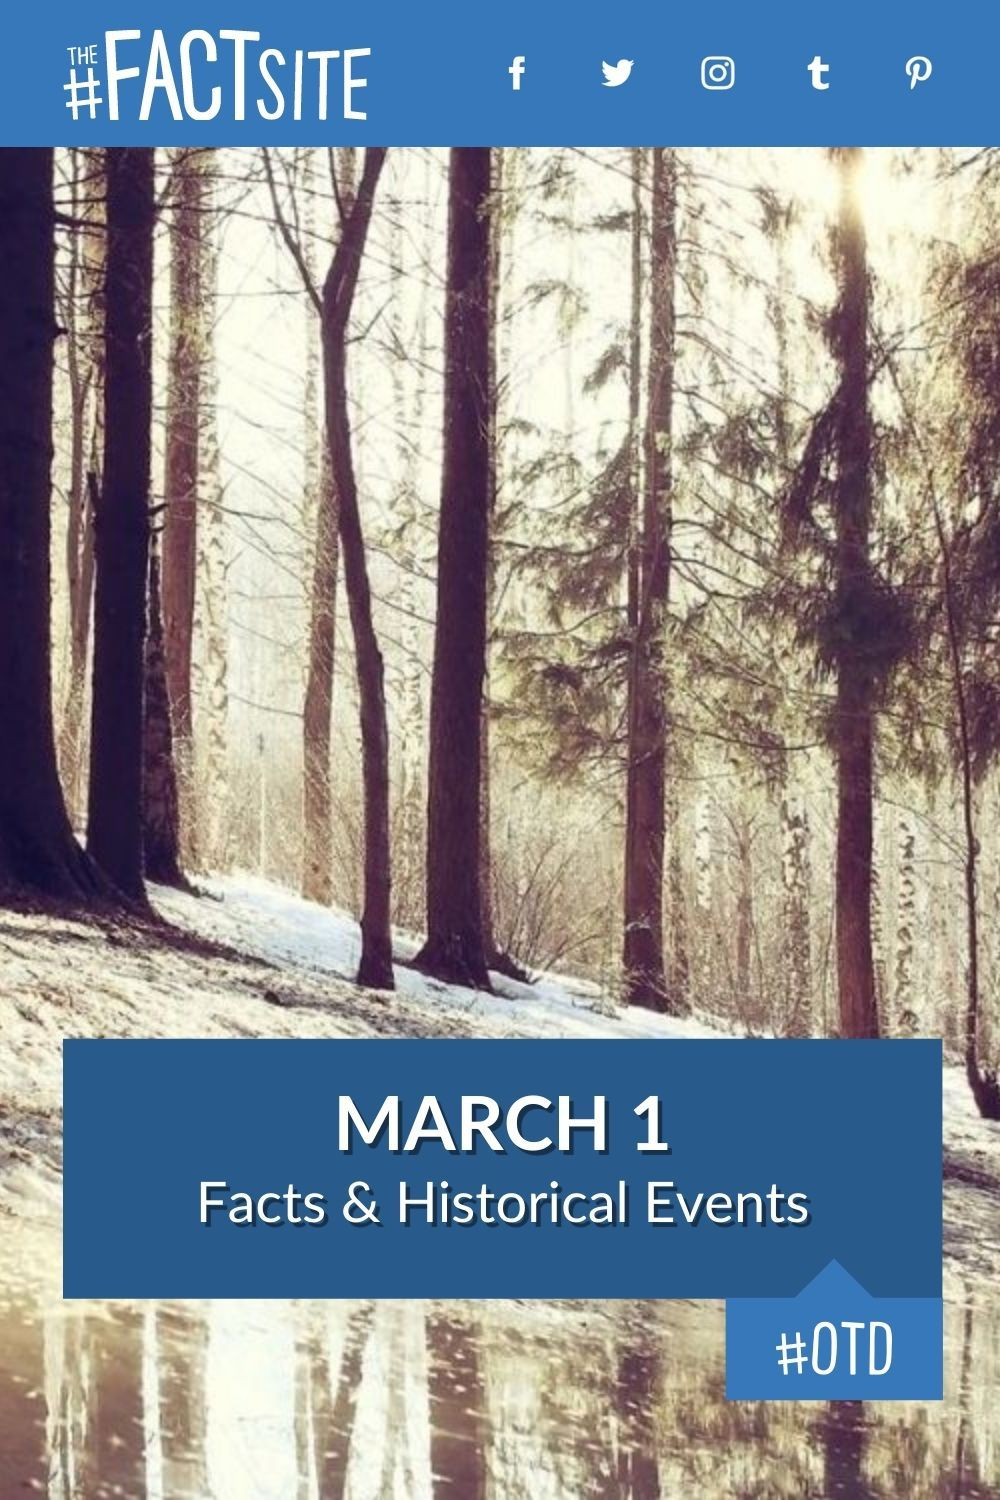 Facts & Historic Events That Happened on March 1